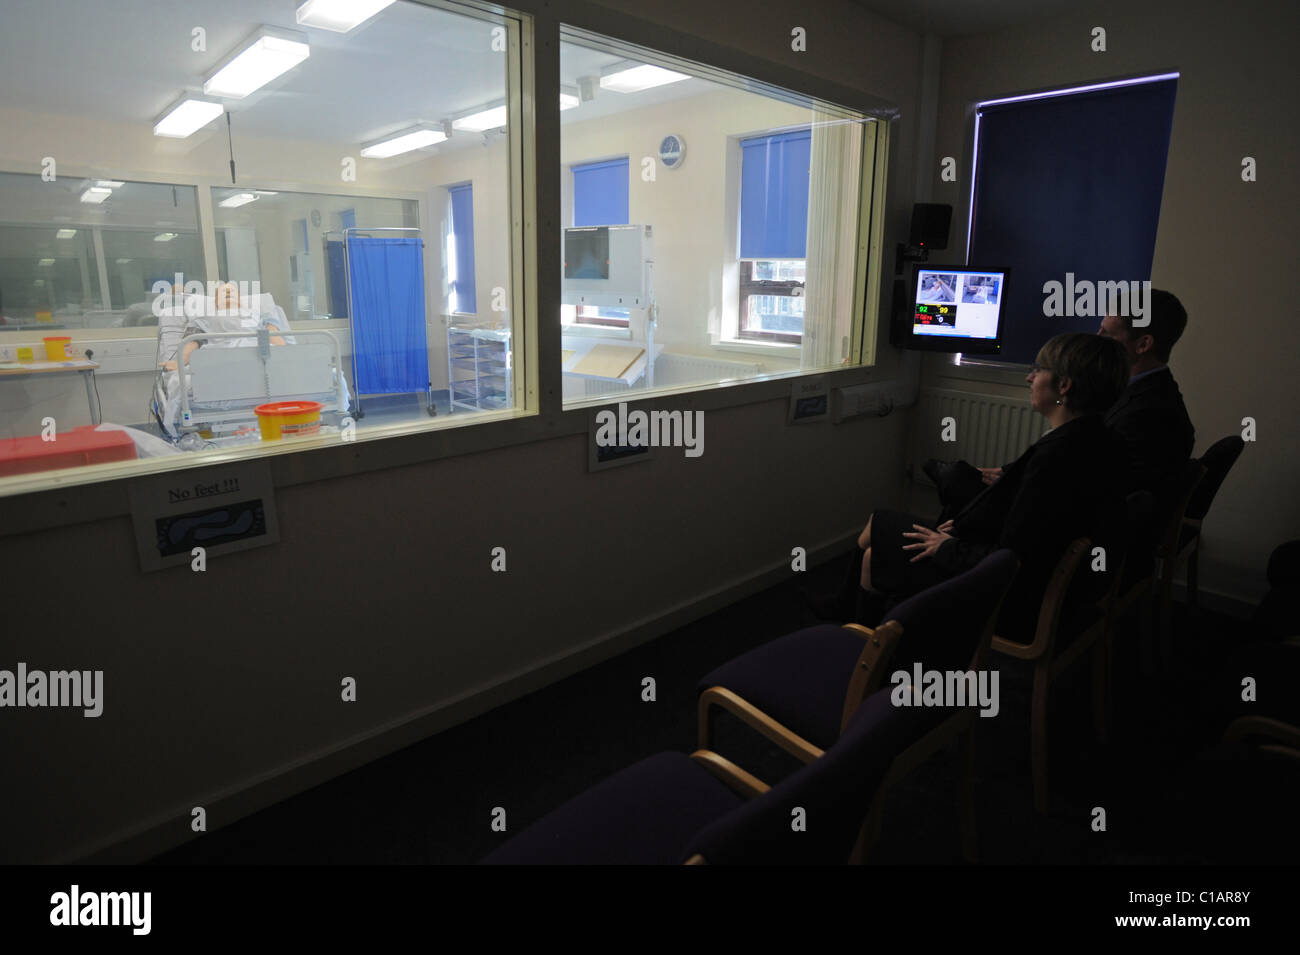 Students watch SimMan 3G a new dummy patient from the observation area of the Simulation Suite at Worthing hospital - Stock Image